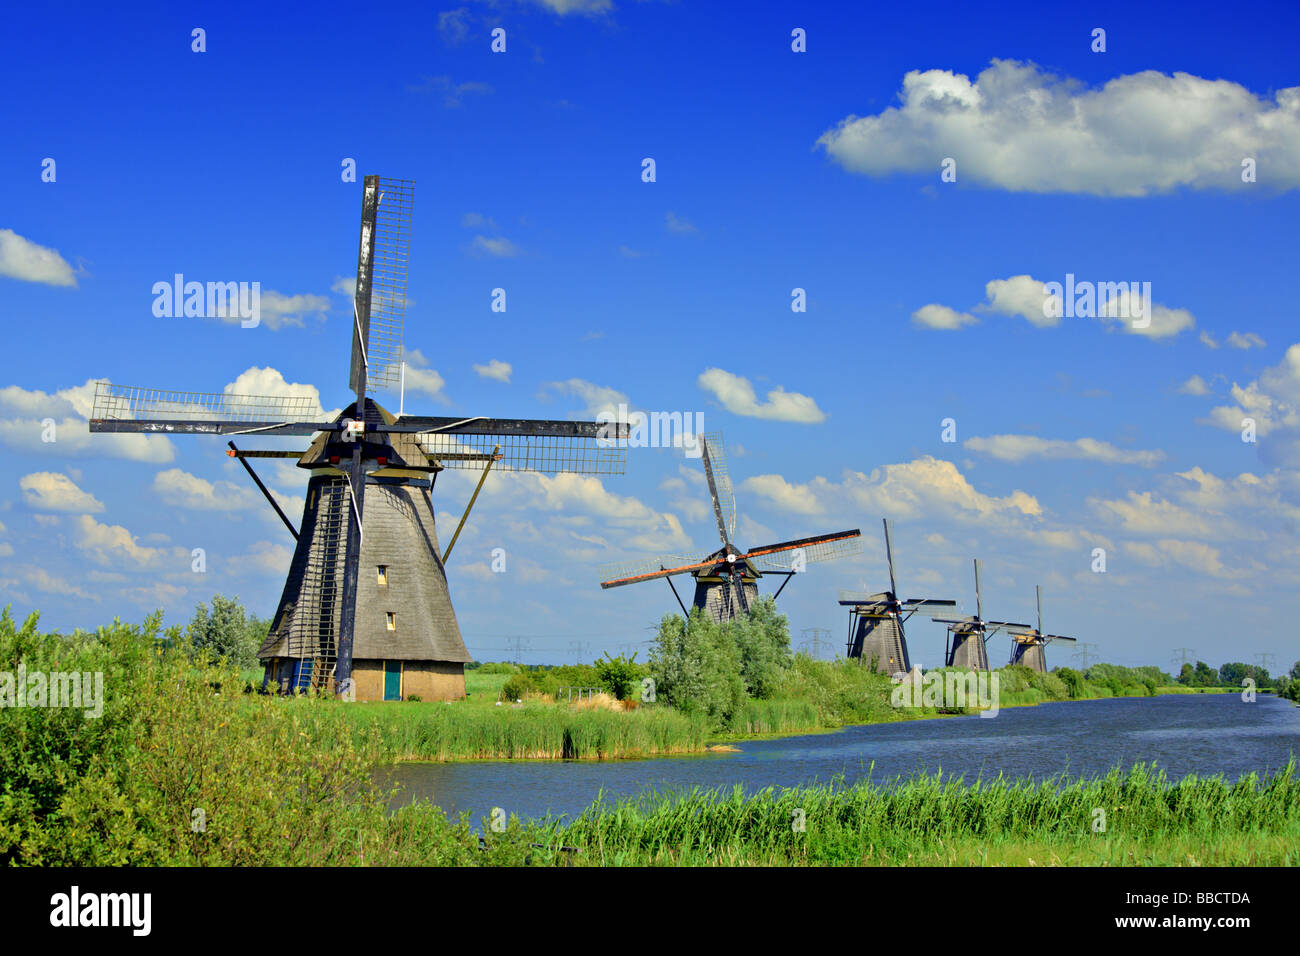 windm hle in kinderdijk holland stockfoto bild 24254198 alamy. Black Bedroom Furniture Sets. Home Design Ideas